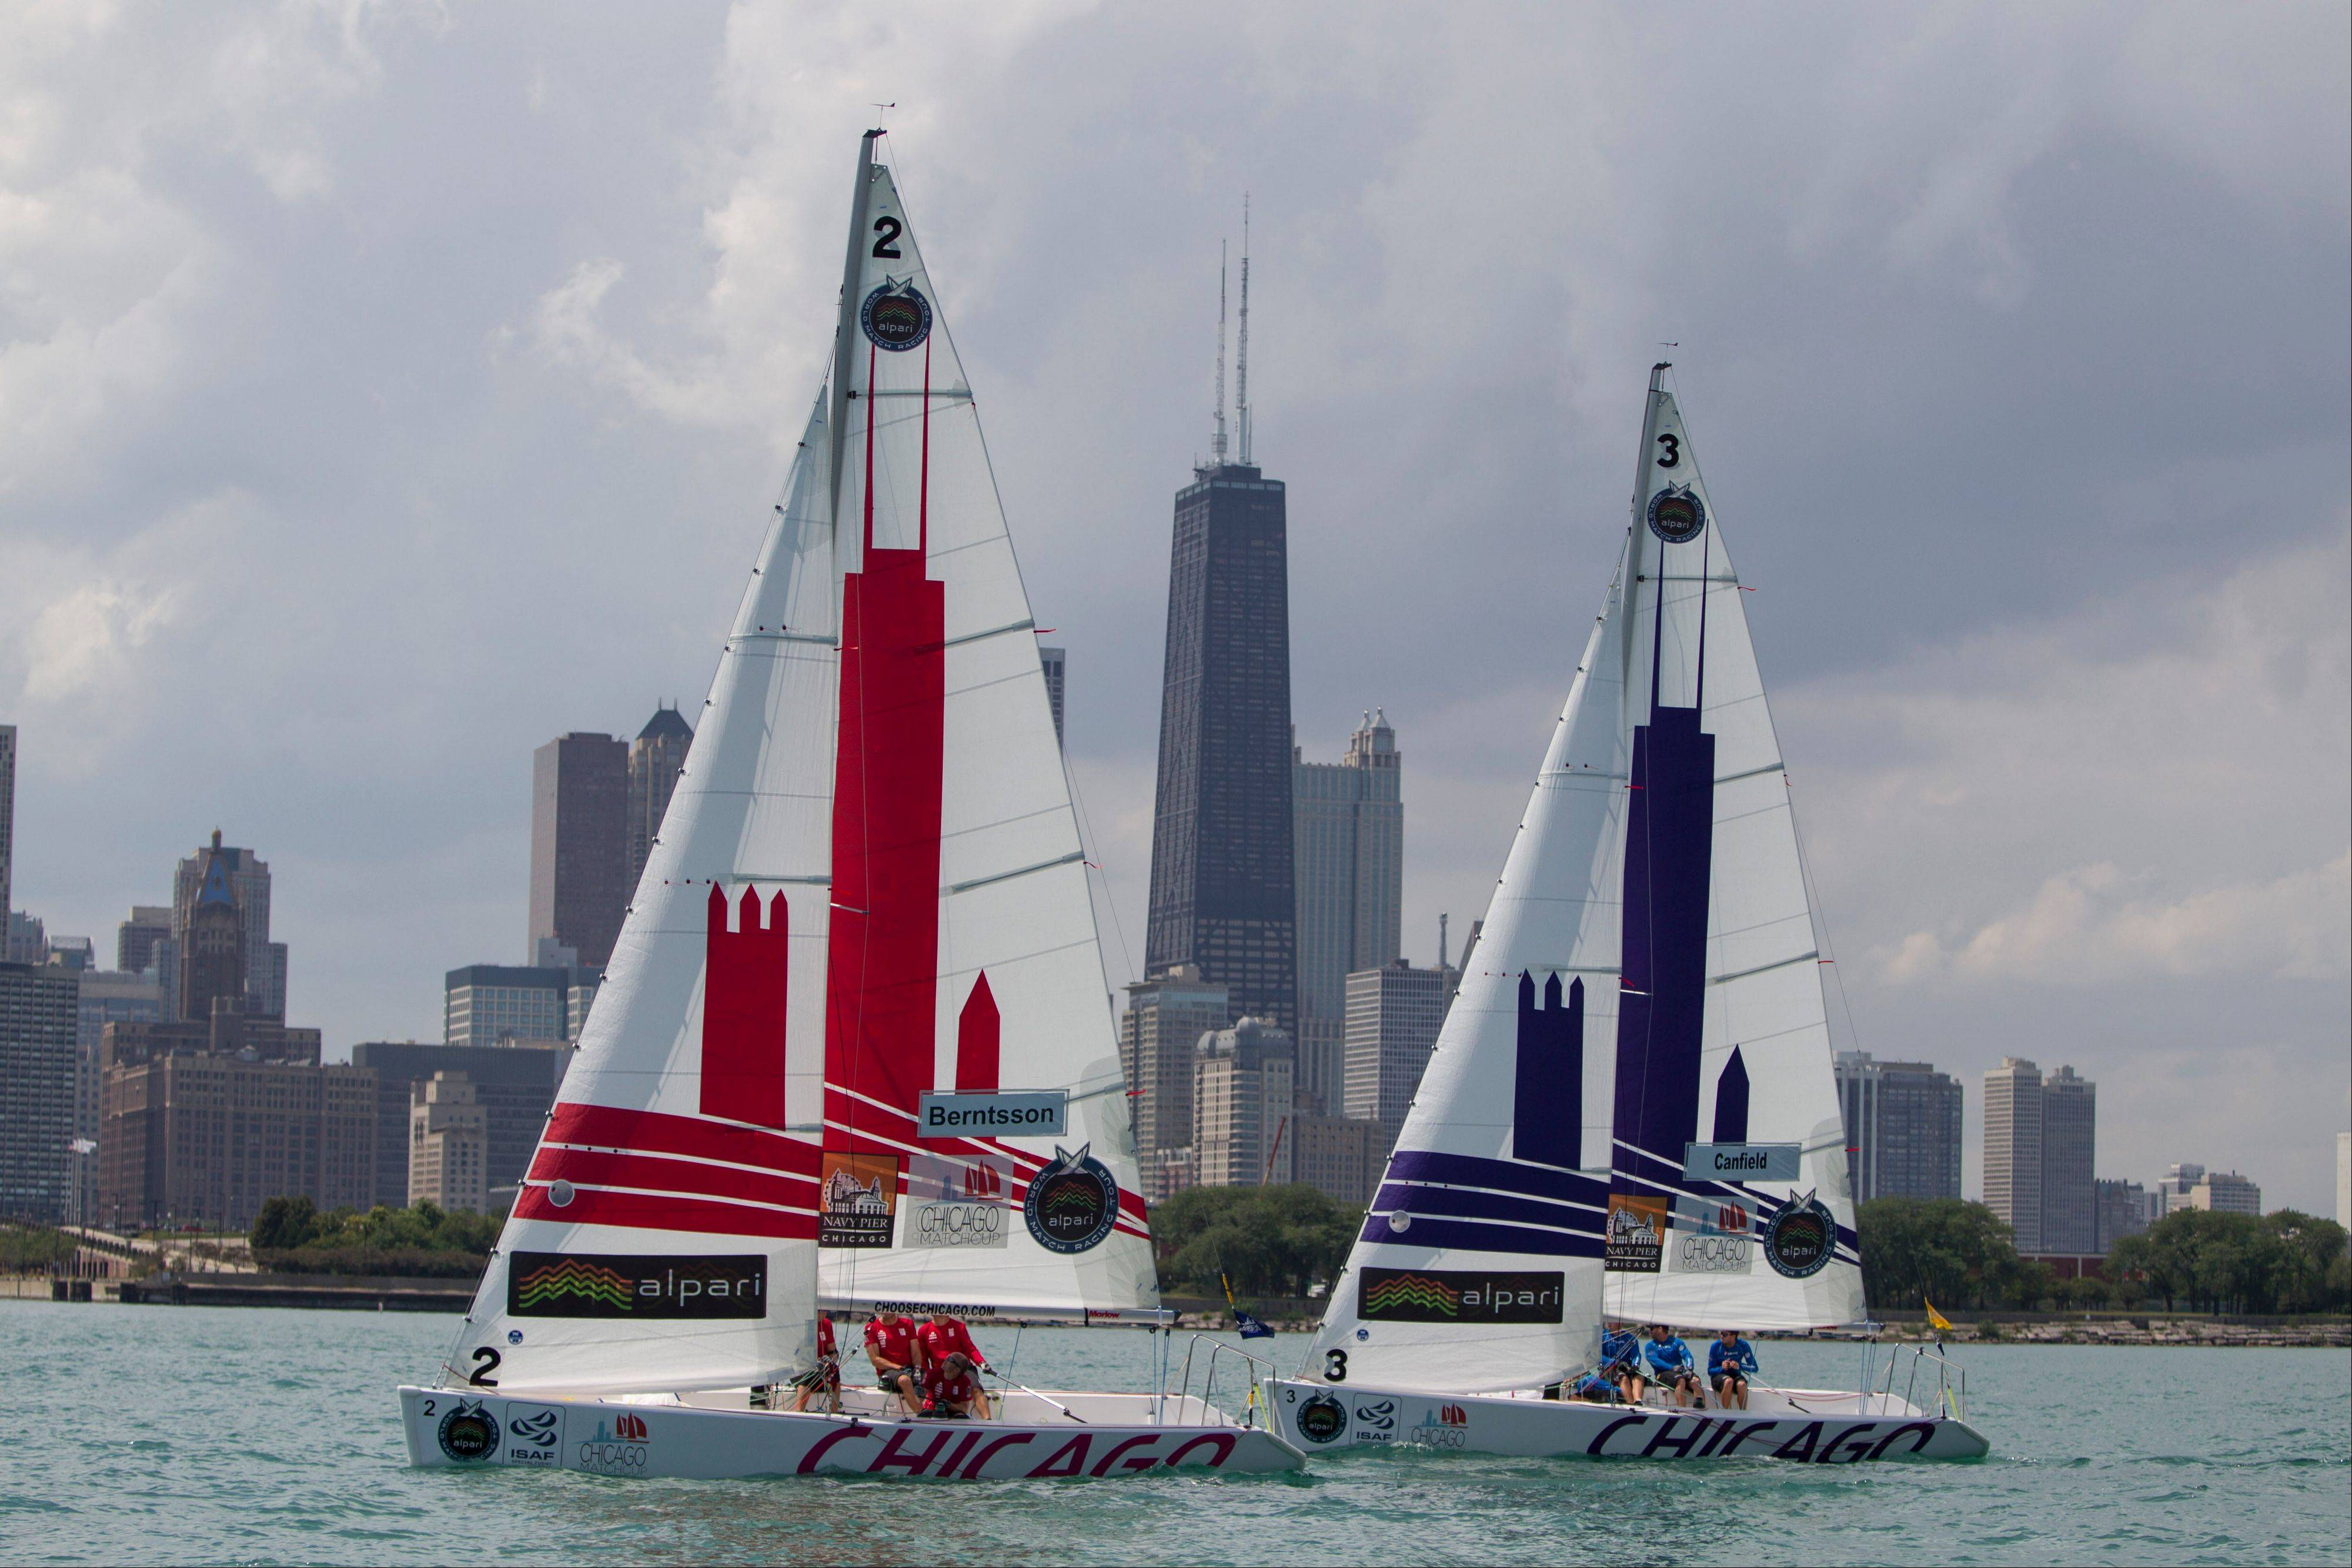 Sailboats sail in the Chicago Match Race compete near Navy Pier, Wednesday in Chicago.